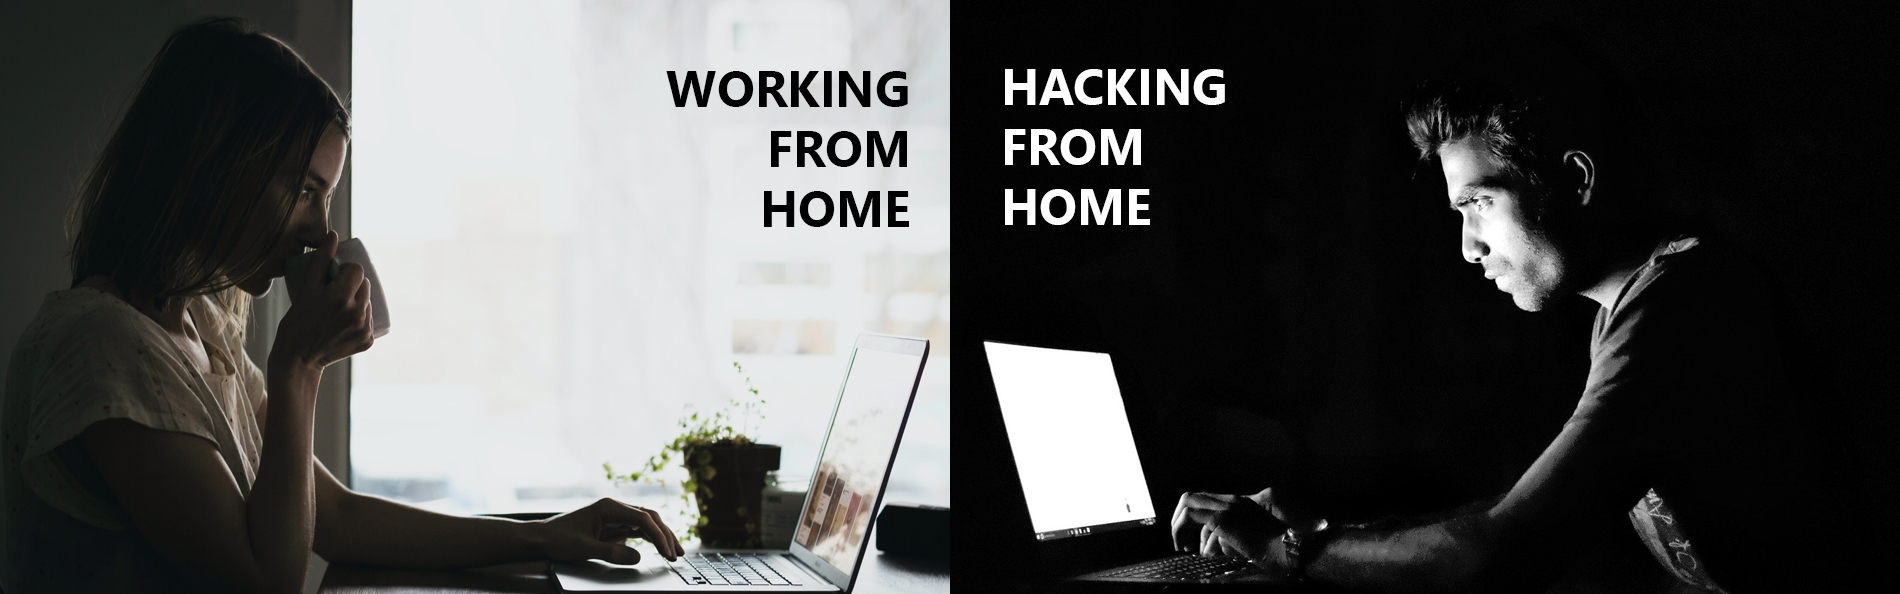 Working from home/ Hacking from home